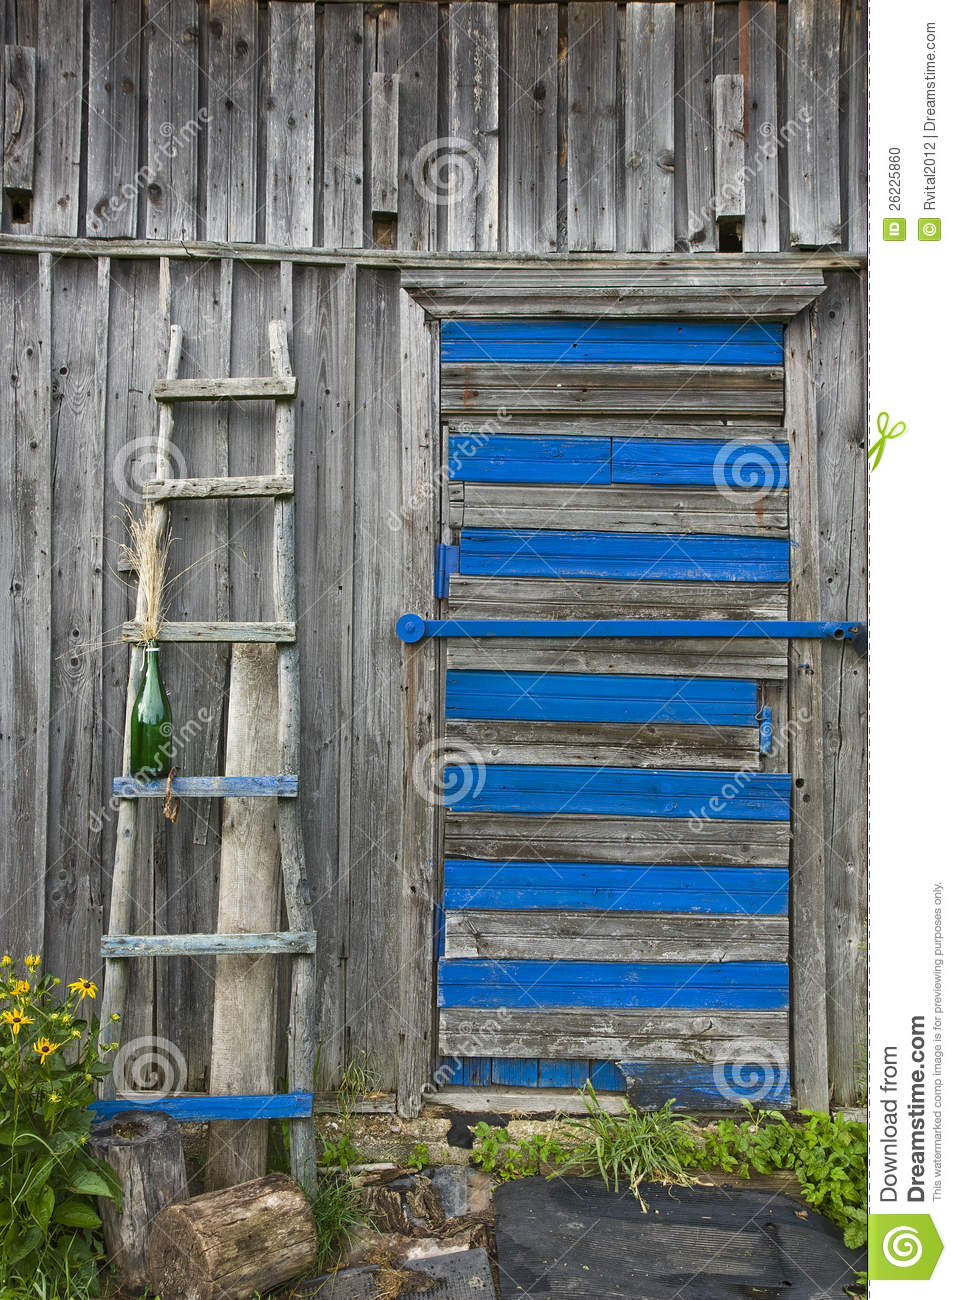 Ladder Leaning Against A Wooden Wall Stock Photo Image